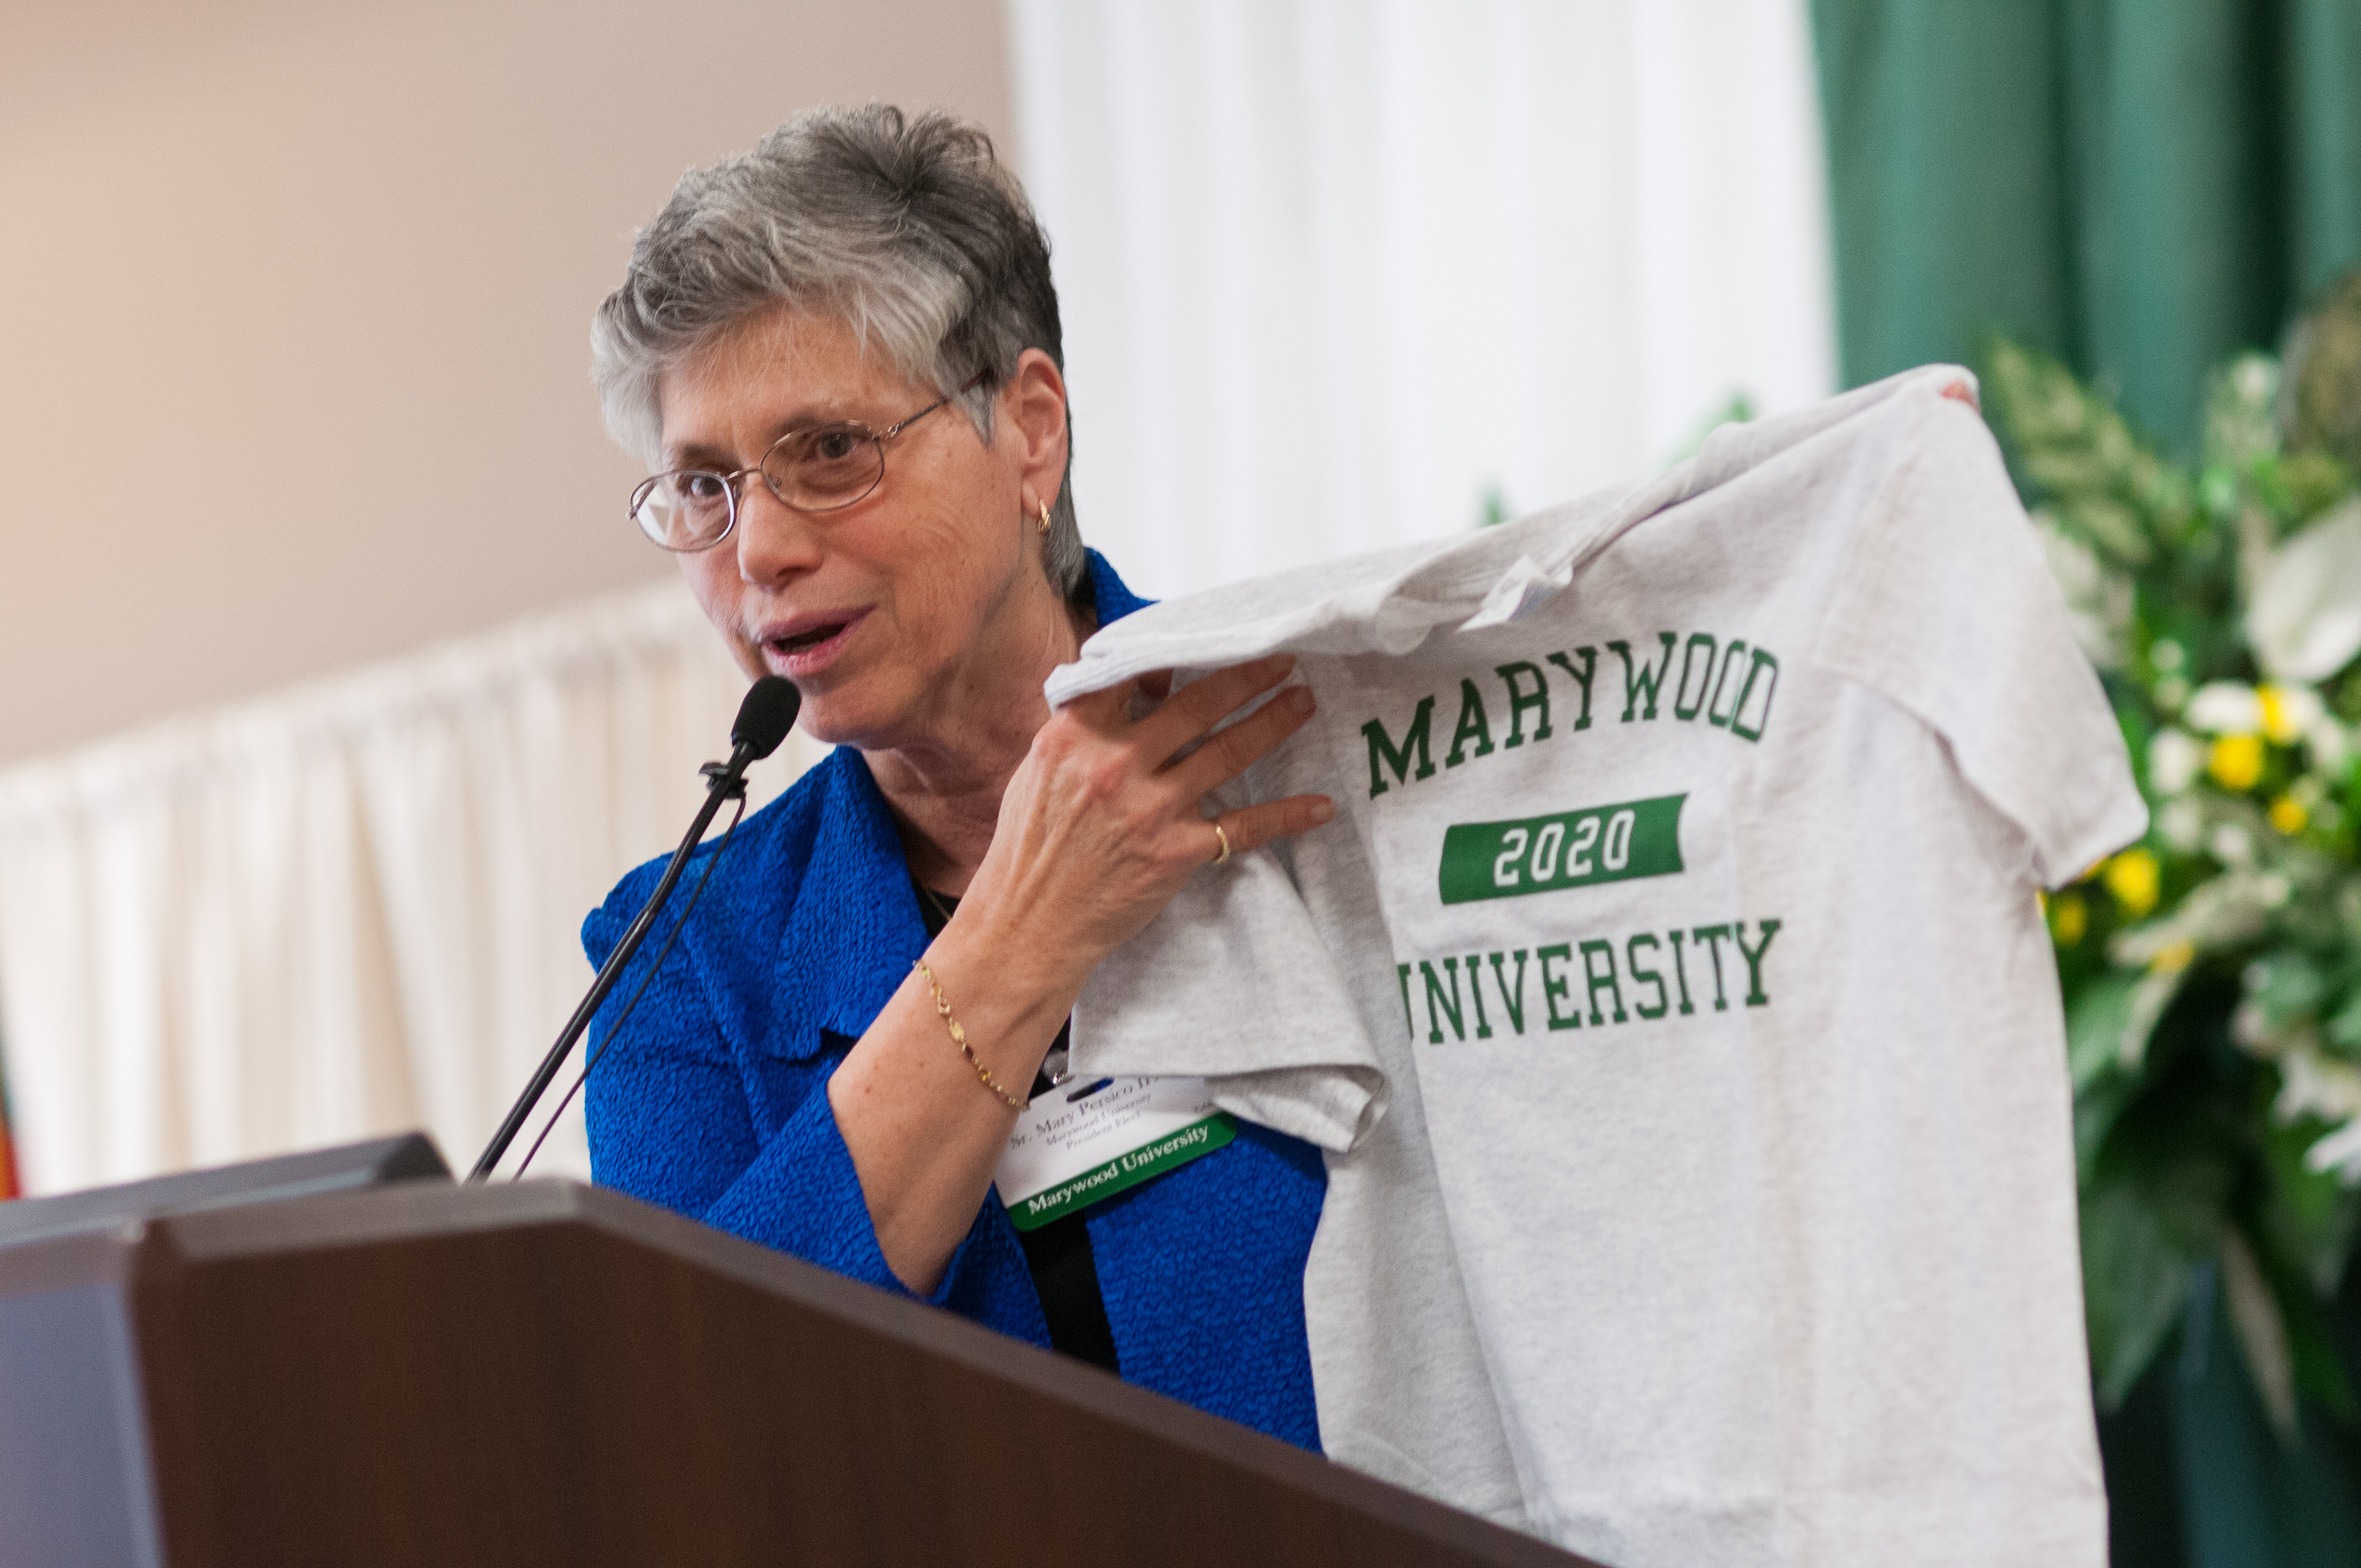 Sister Mary Persico with Class of 2020 Shirt